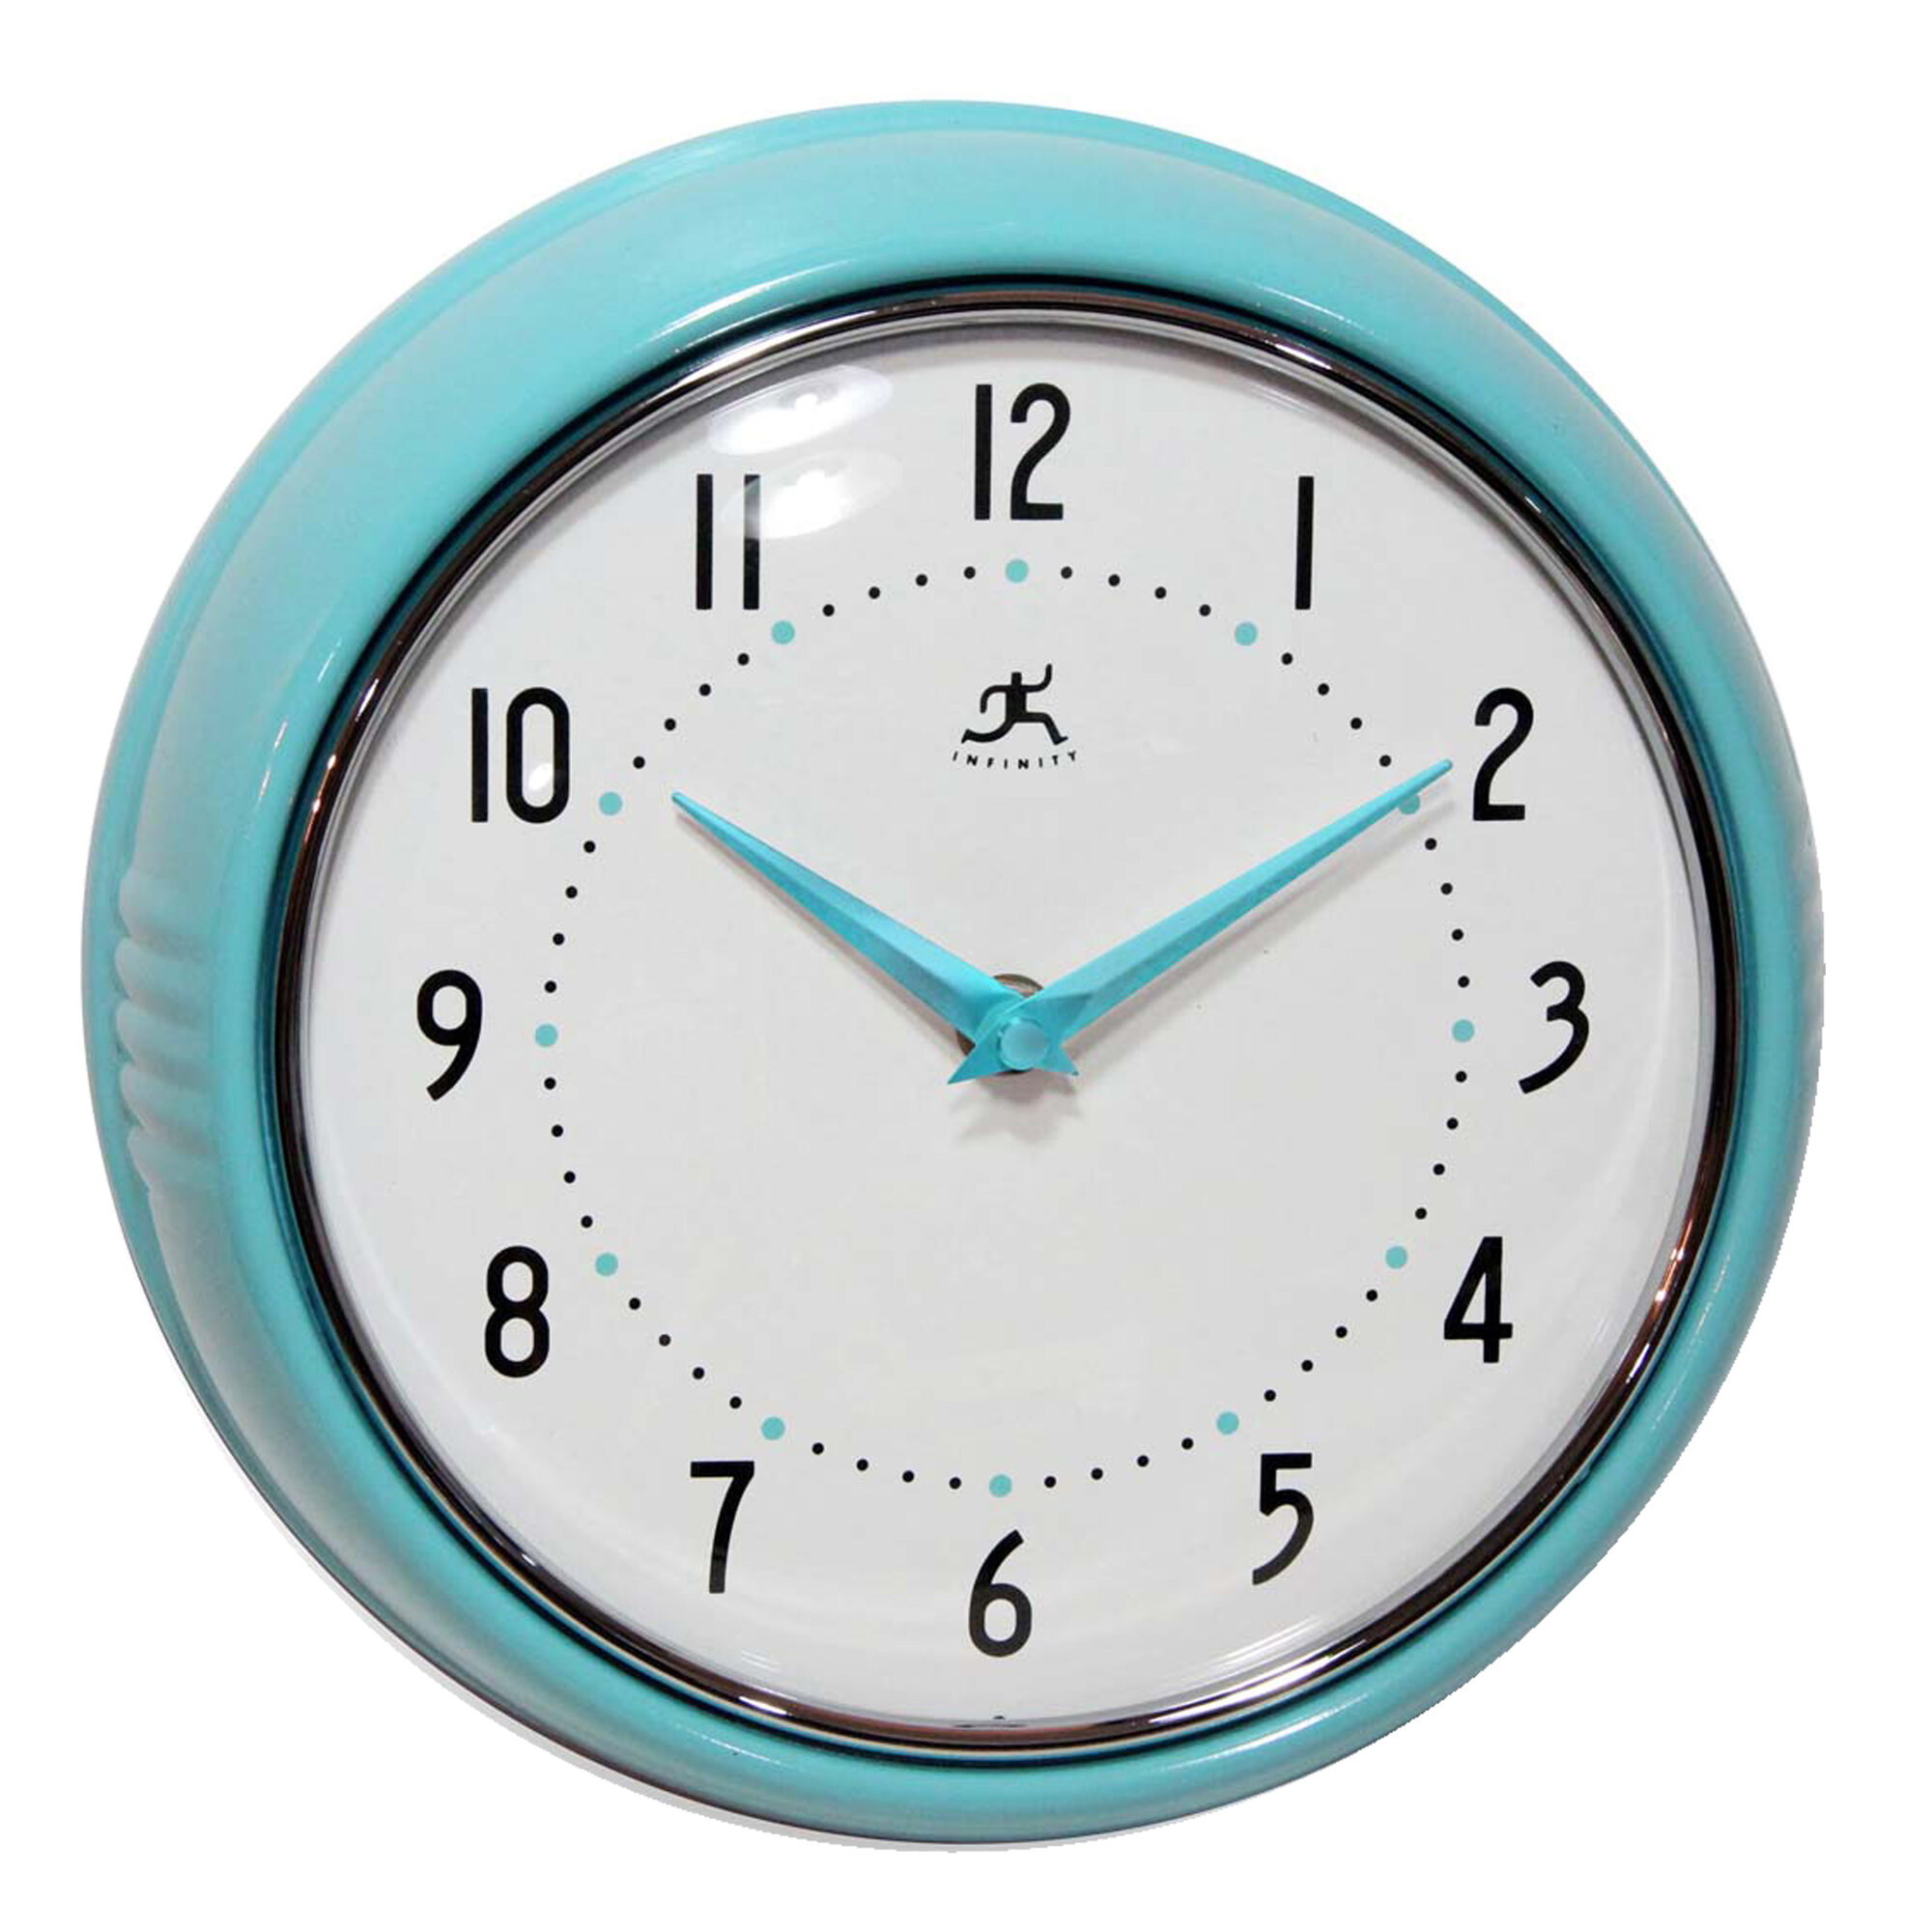 Retro Metal Wall Clock Kitchen Vintage Party Beach Bar